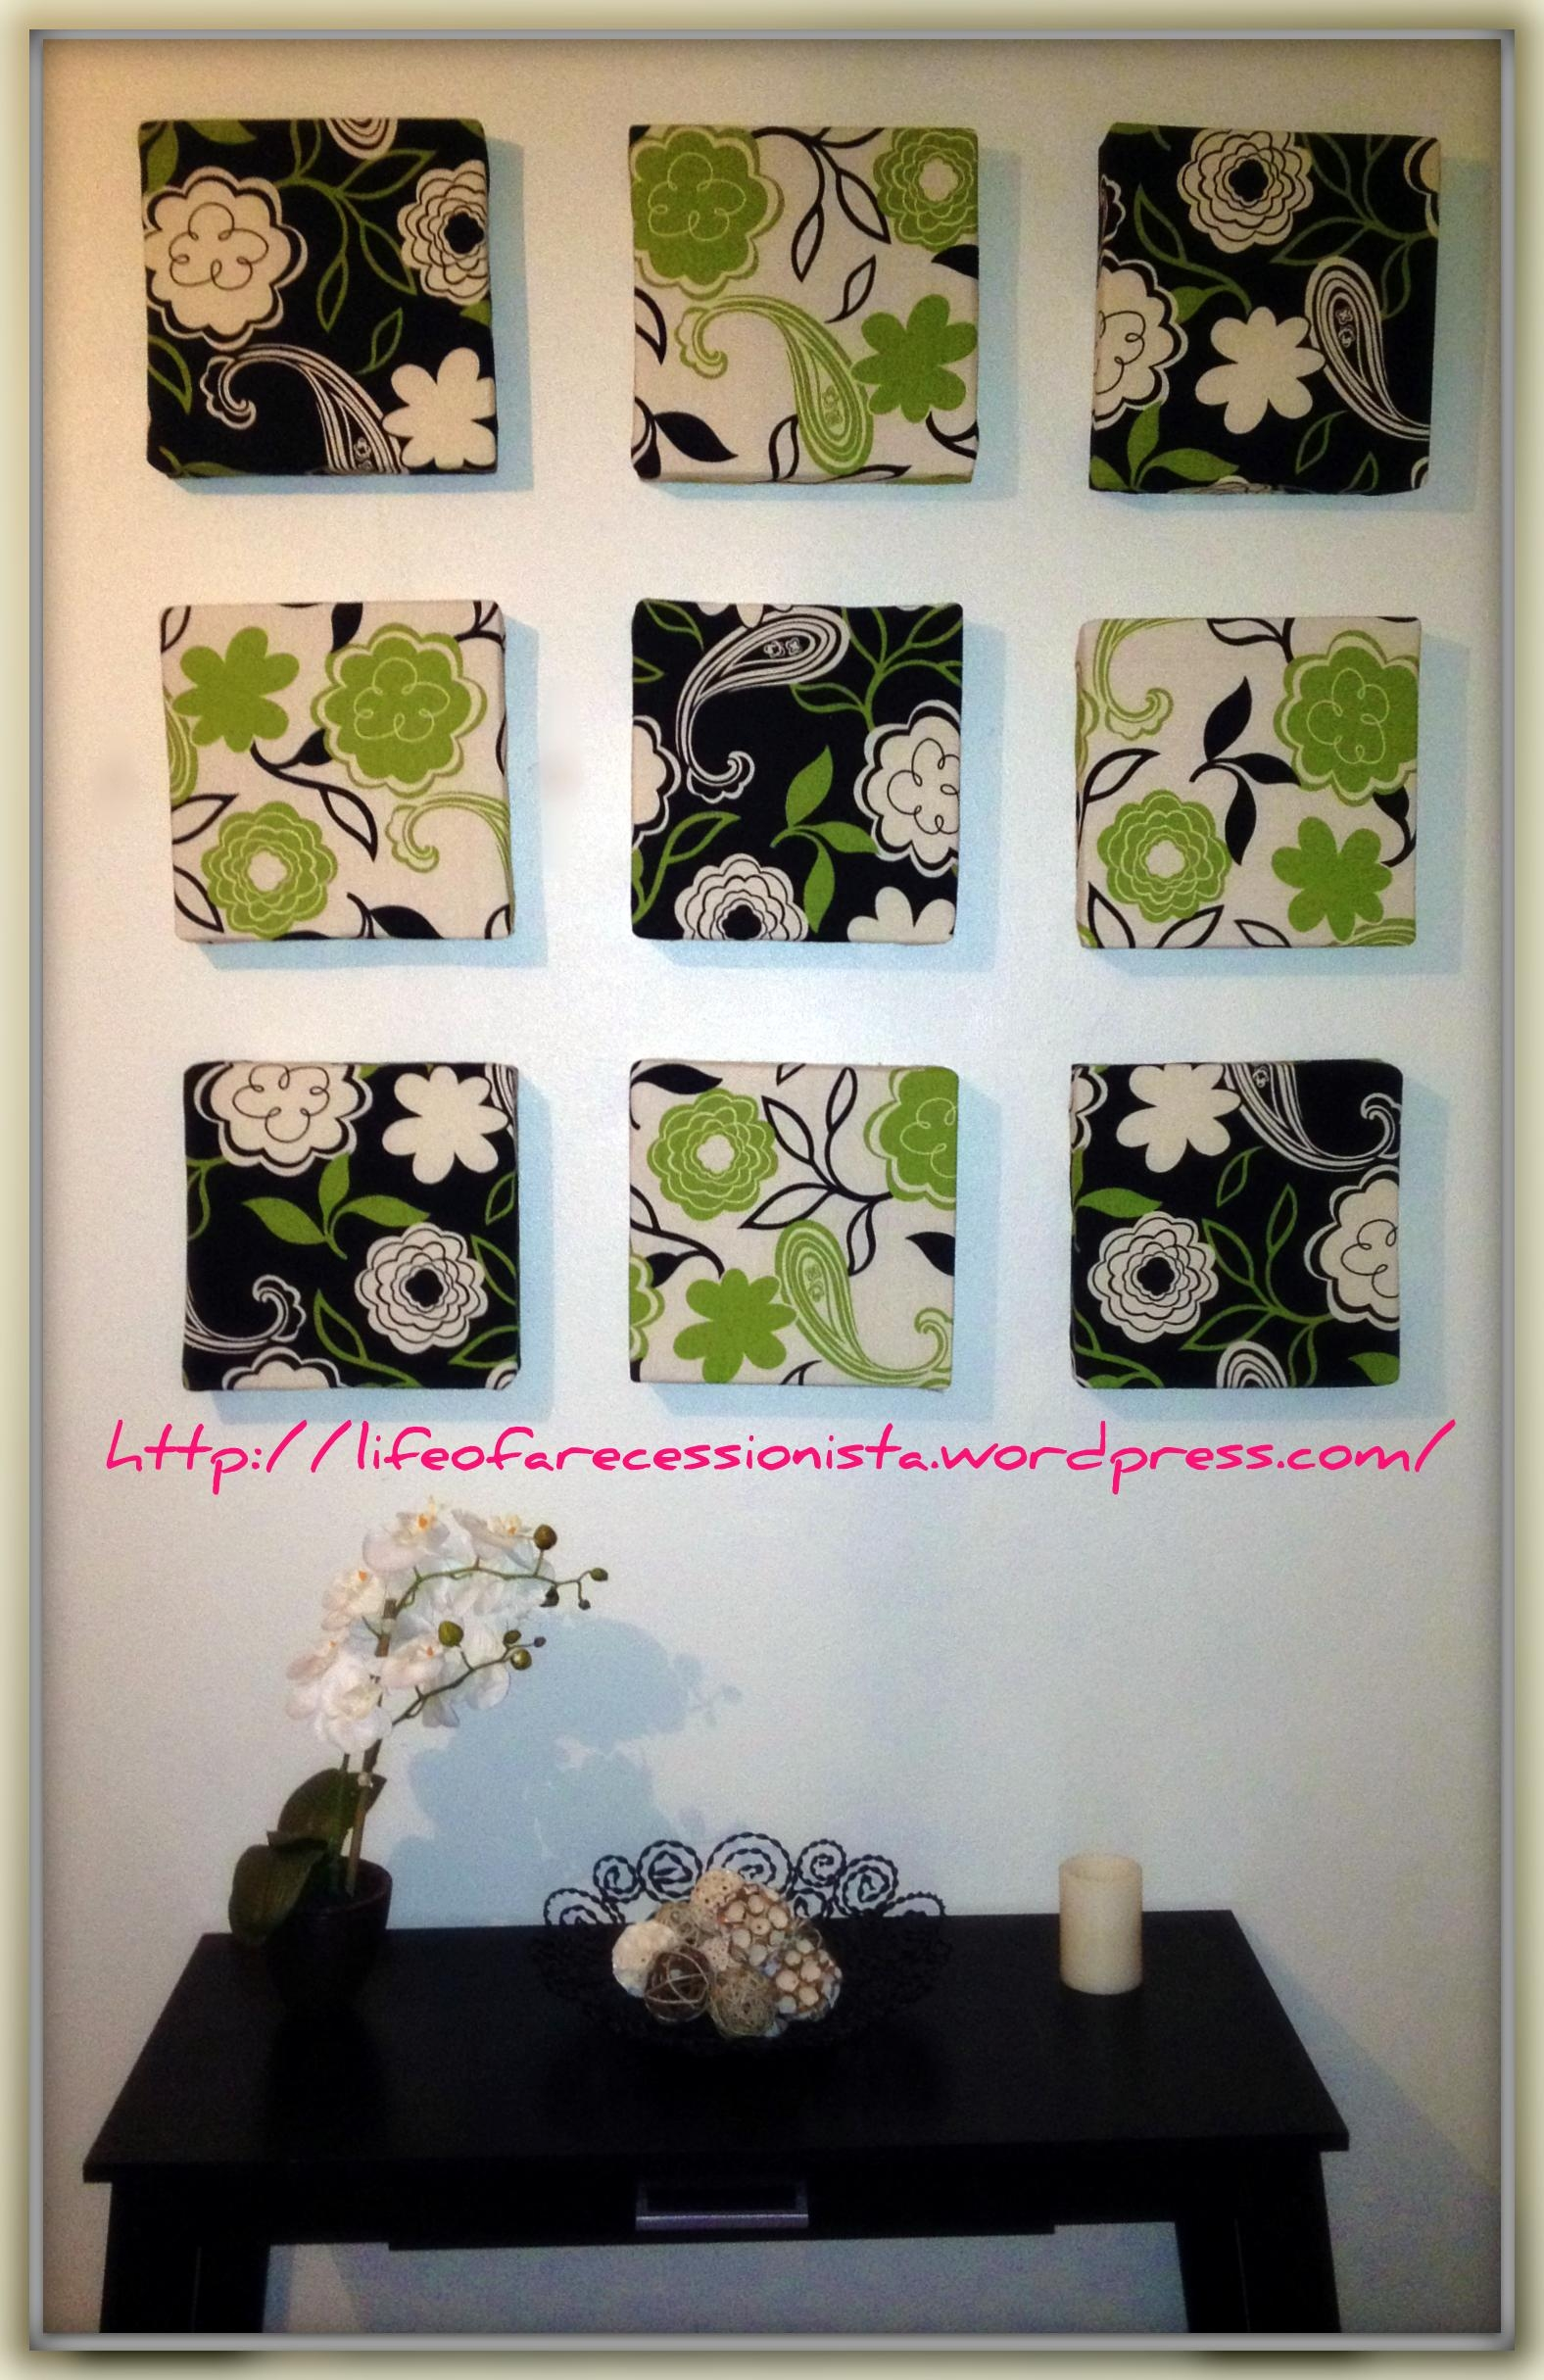 Easy Diy Wall Art | Life Of A Recessionista Pertaining To Pinterest Diy Wall Art (Image 15 of 20)